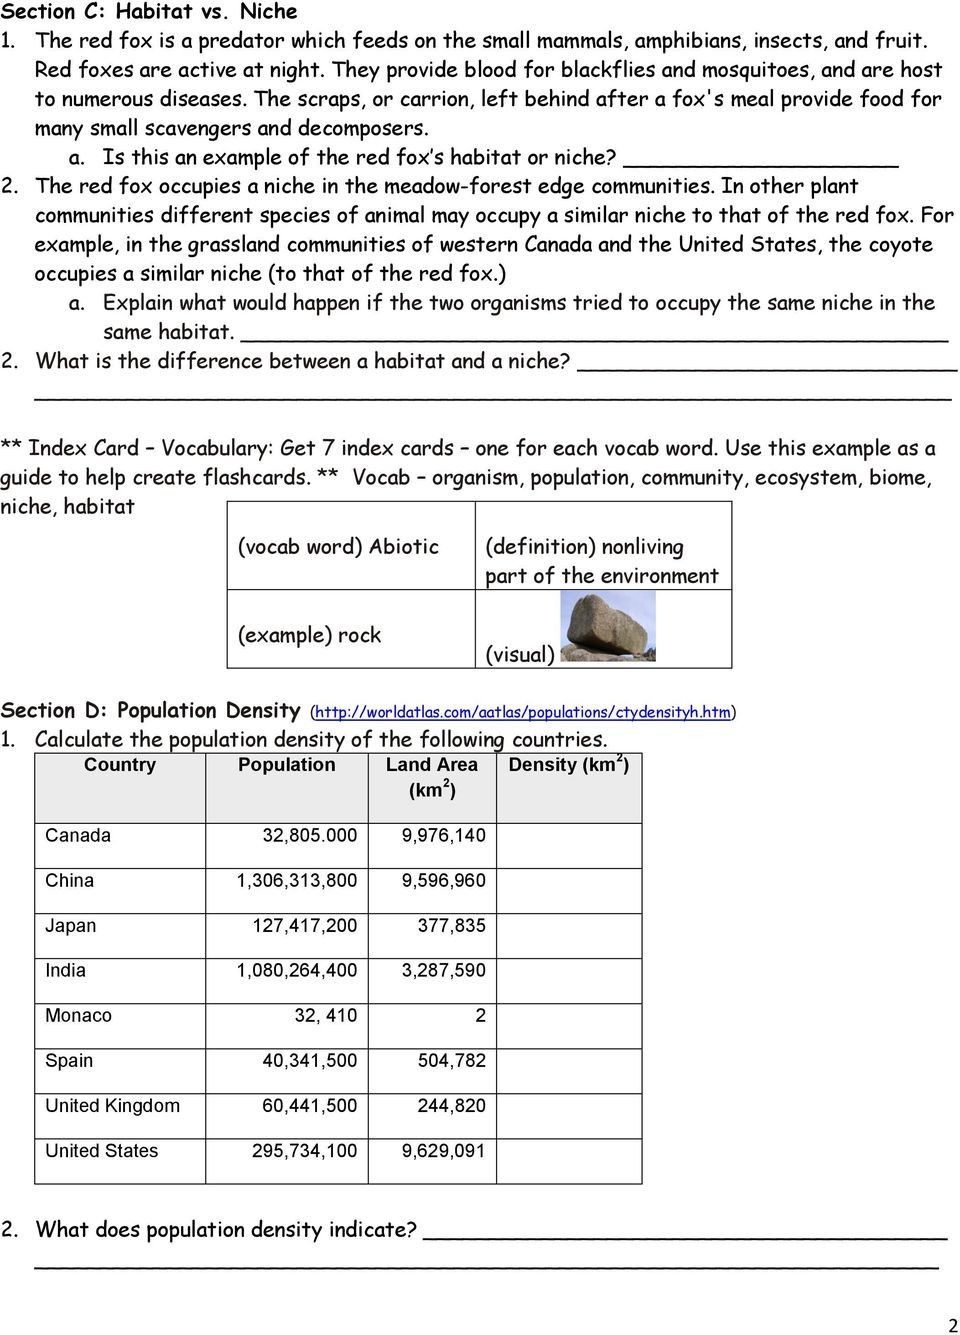 Ecology Worksheets Middle School Population Munity & Ecosystem Worksheet Pdf Free Download